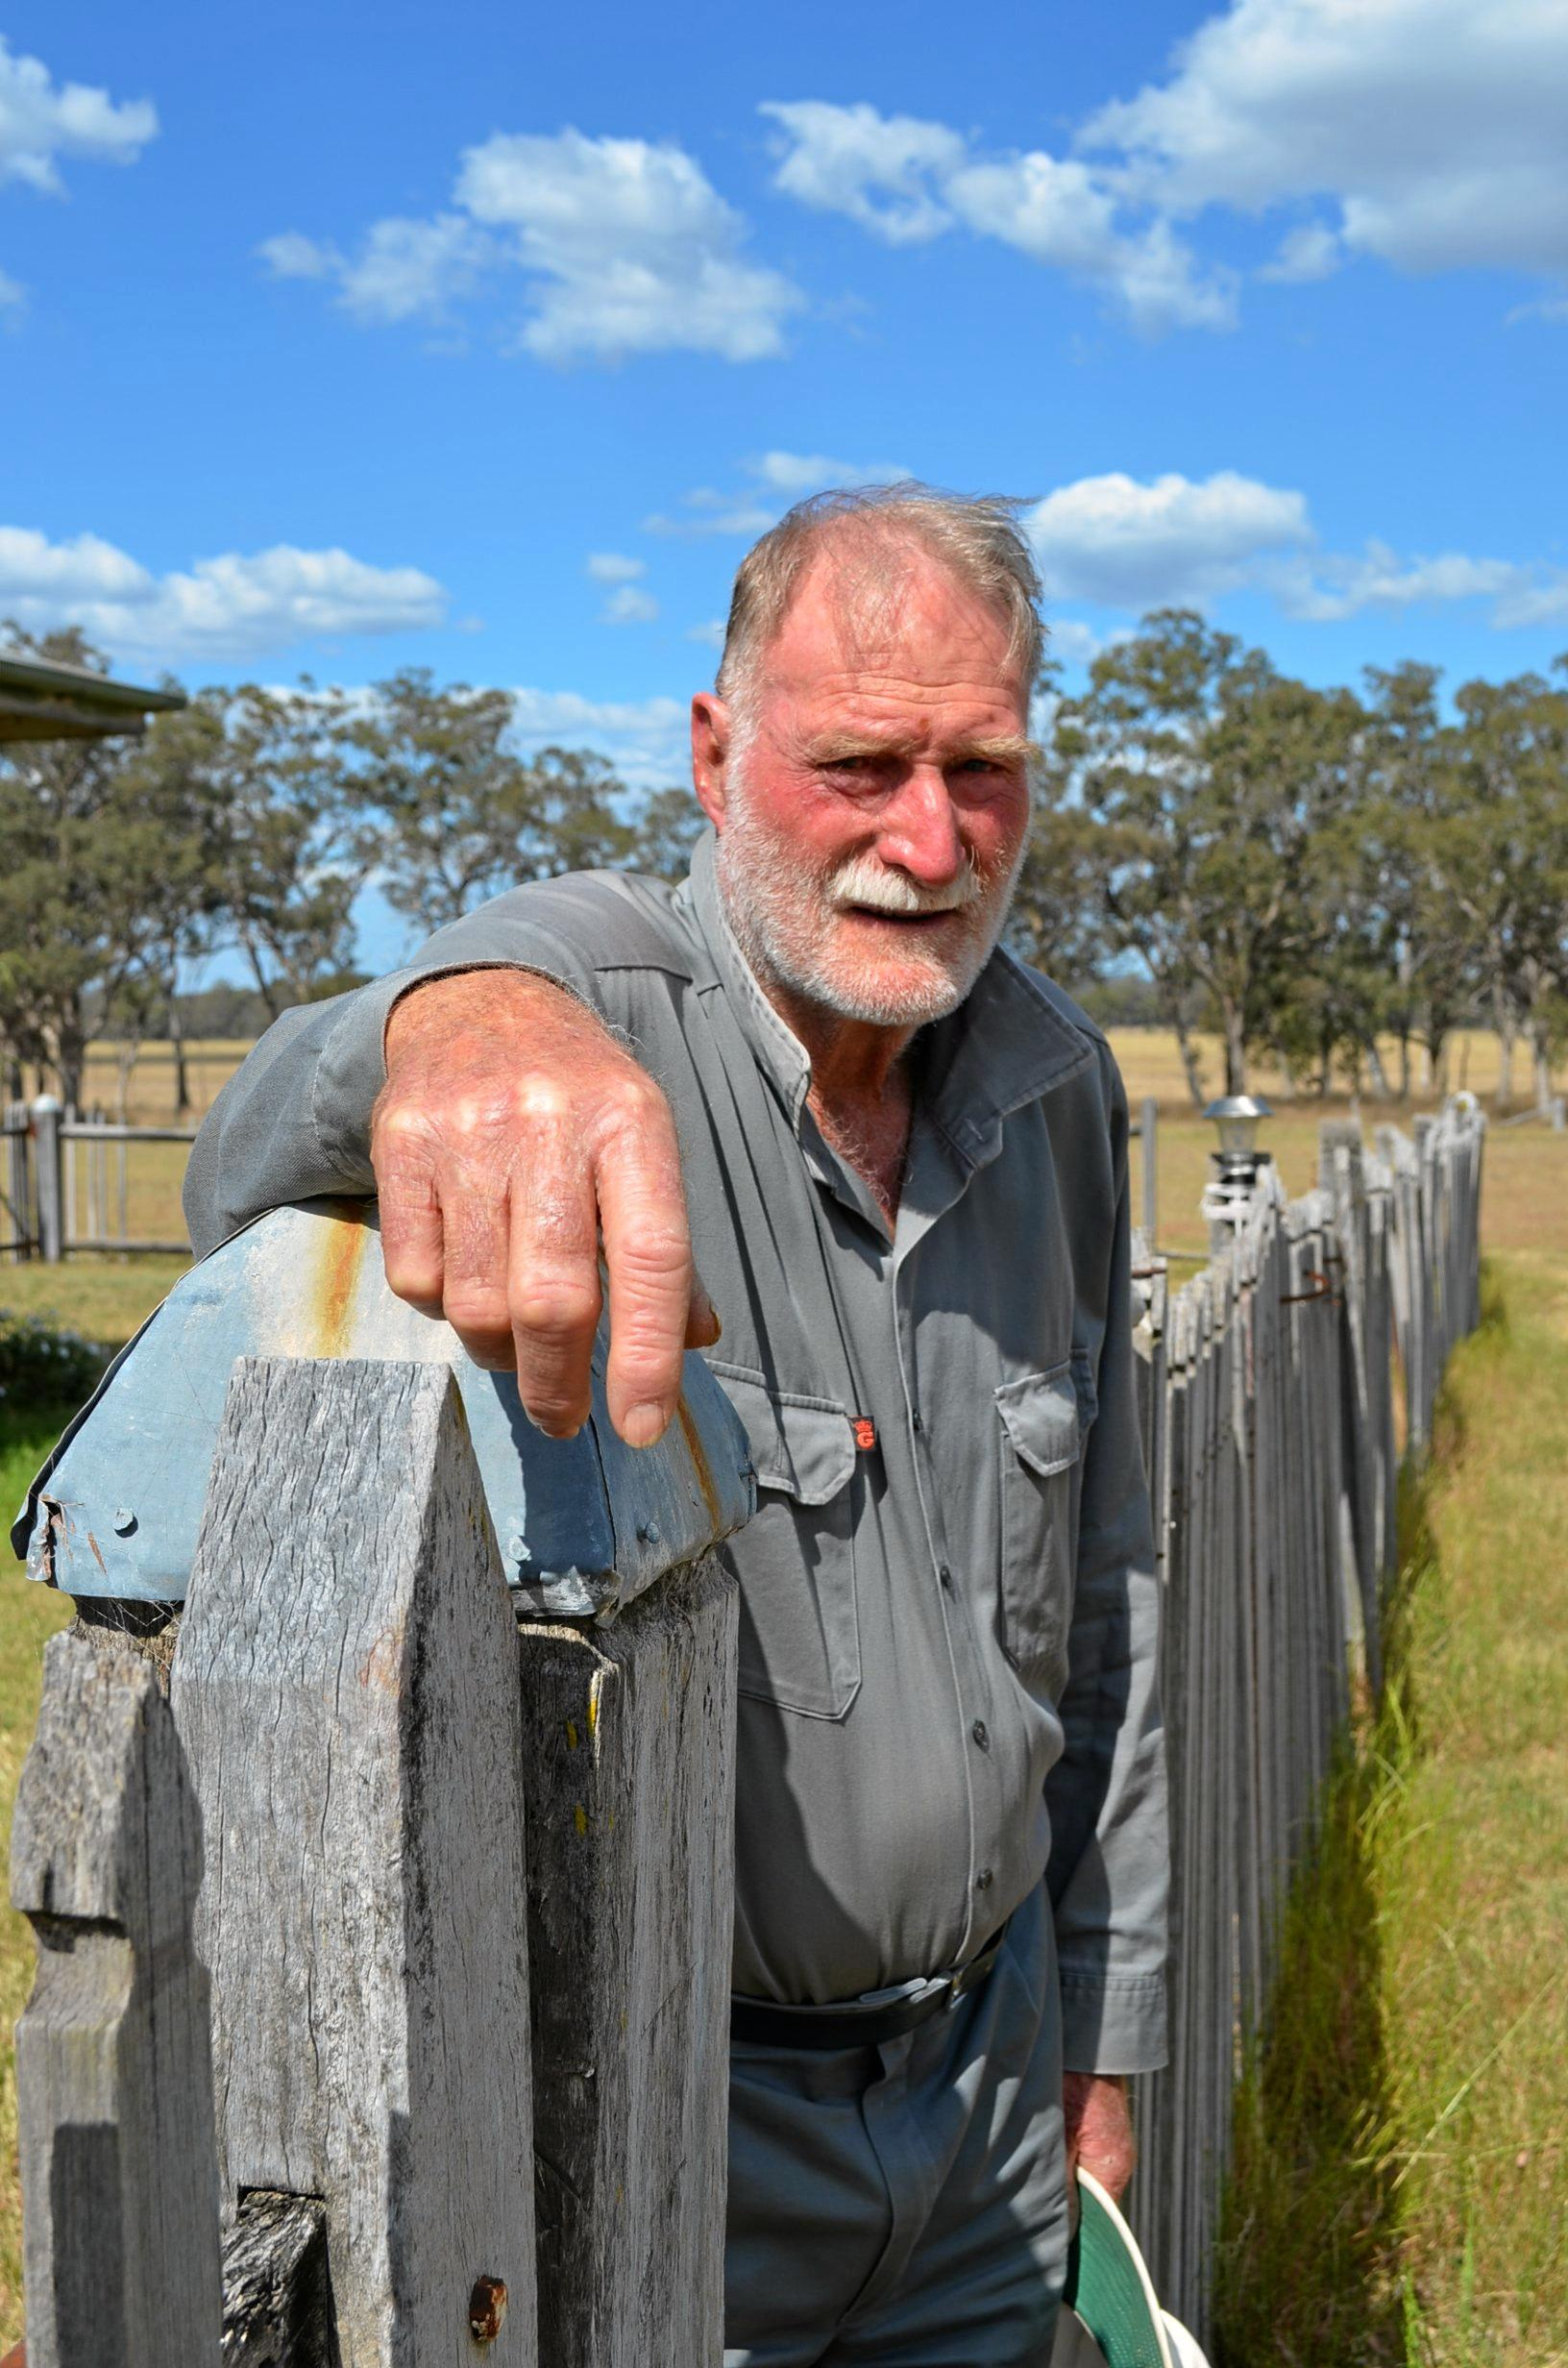 TRAGIC MOMENT: Karara landholder Alan Wickham died in an instant after he drove in front of an oncoming truck. He knew the road well but was blinded by sunlight. His wife Carmel is urging all drivers to pay attention, no matter how familiar the road is.